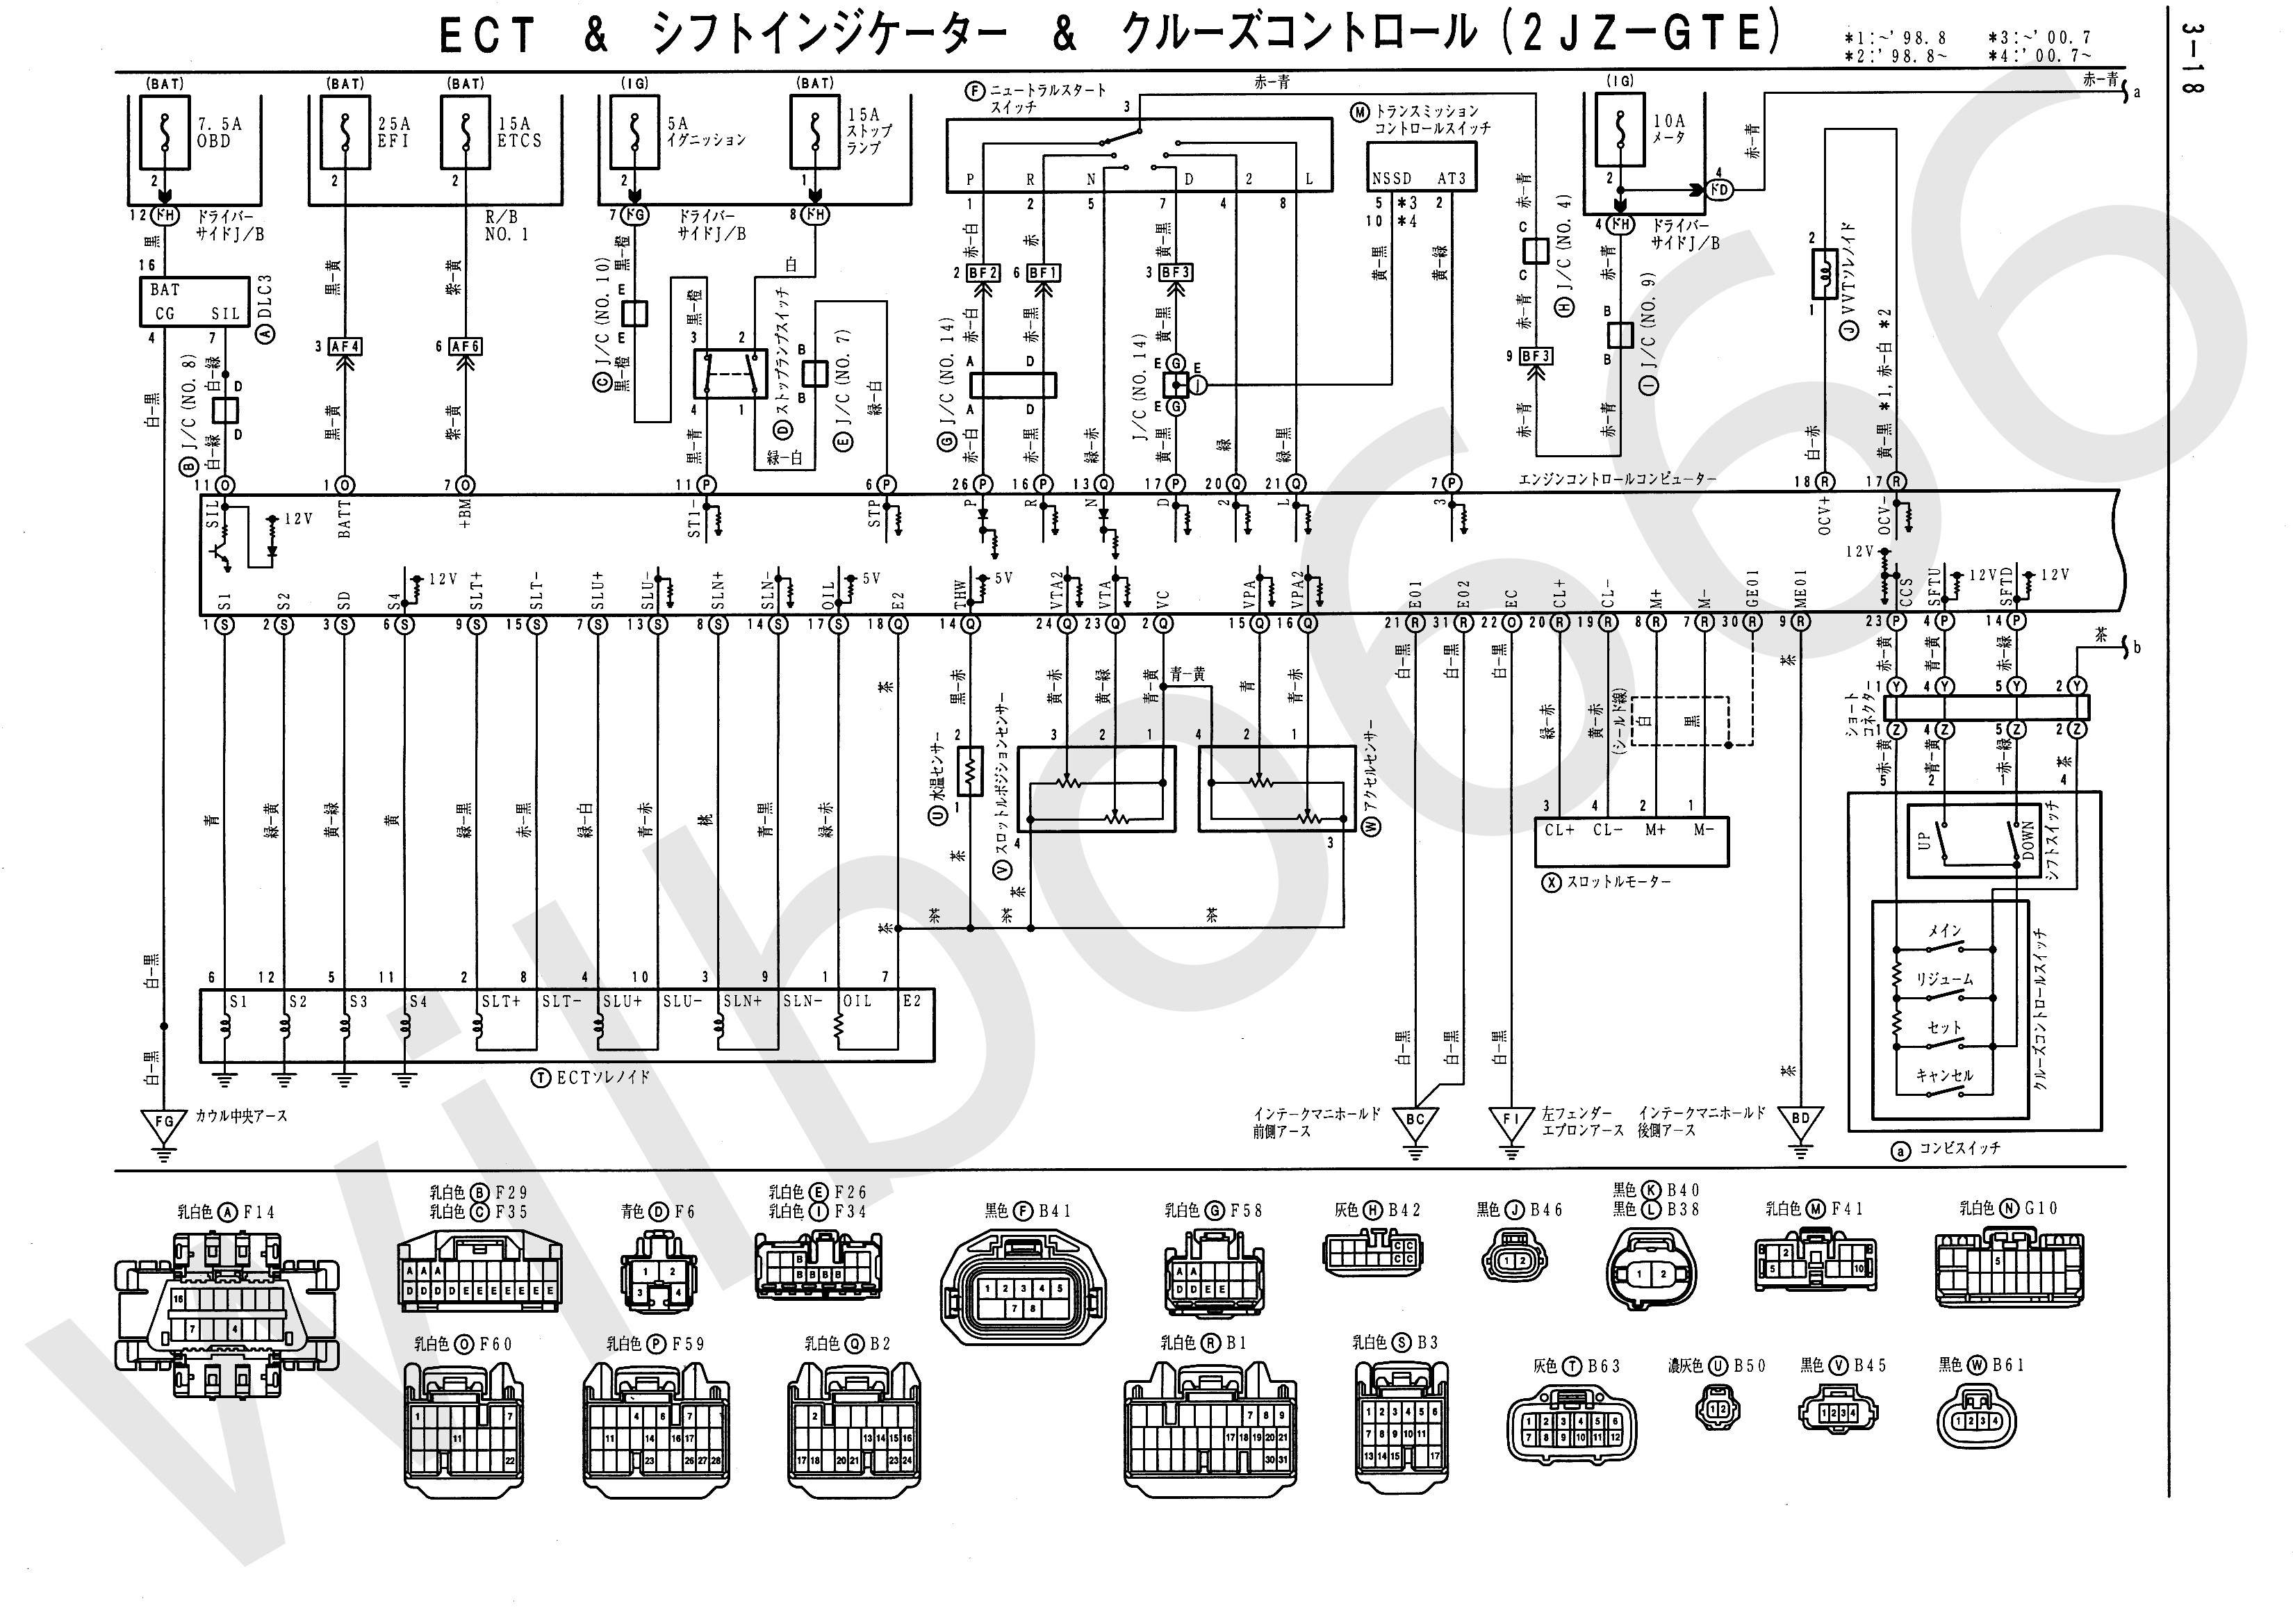 JZS161 Electrical Wiring Diagram 6748505 3 18?resize\=665%2C471 ge sensor wiring diagram ge motor diagrams, ge repair diagrams ge dryer wire diagram at bayanpartner.co